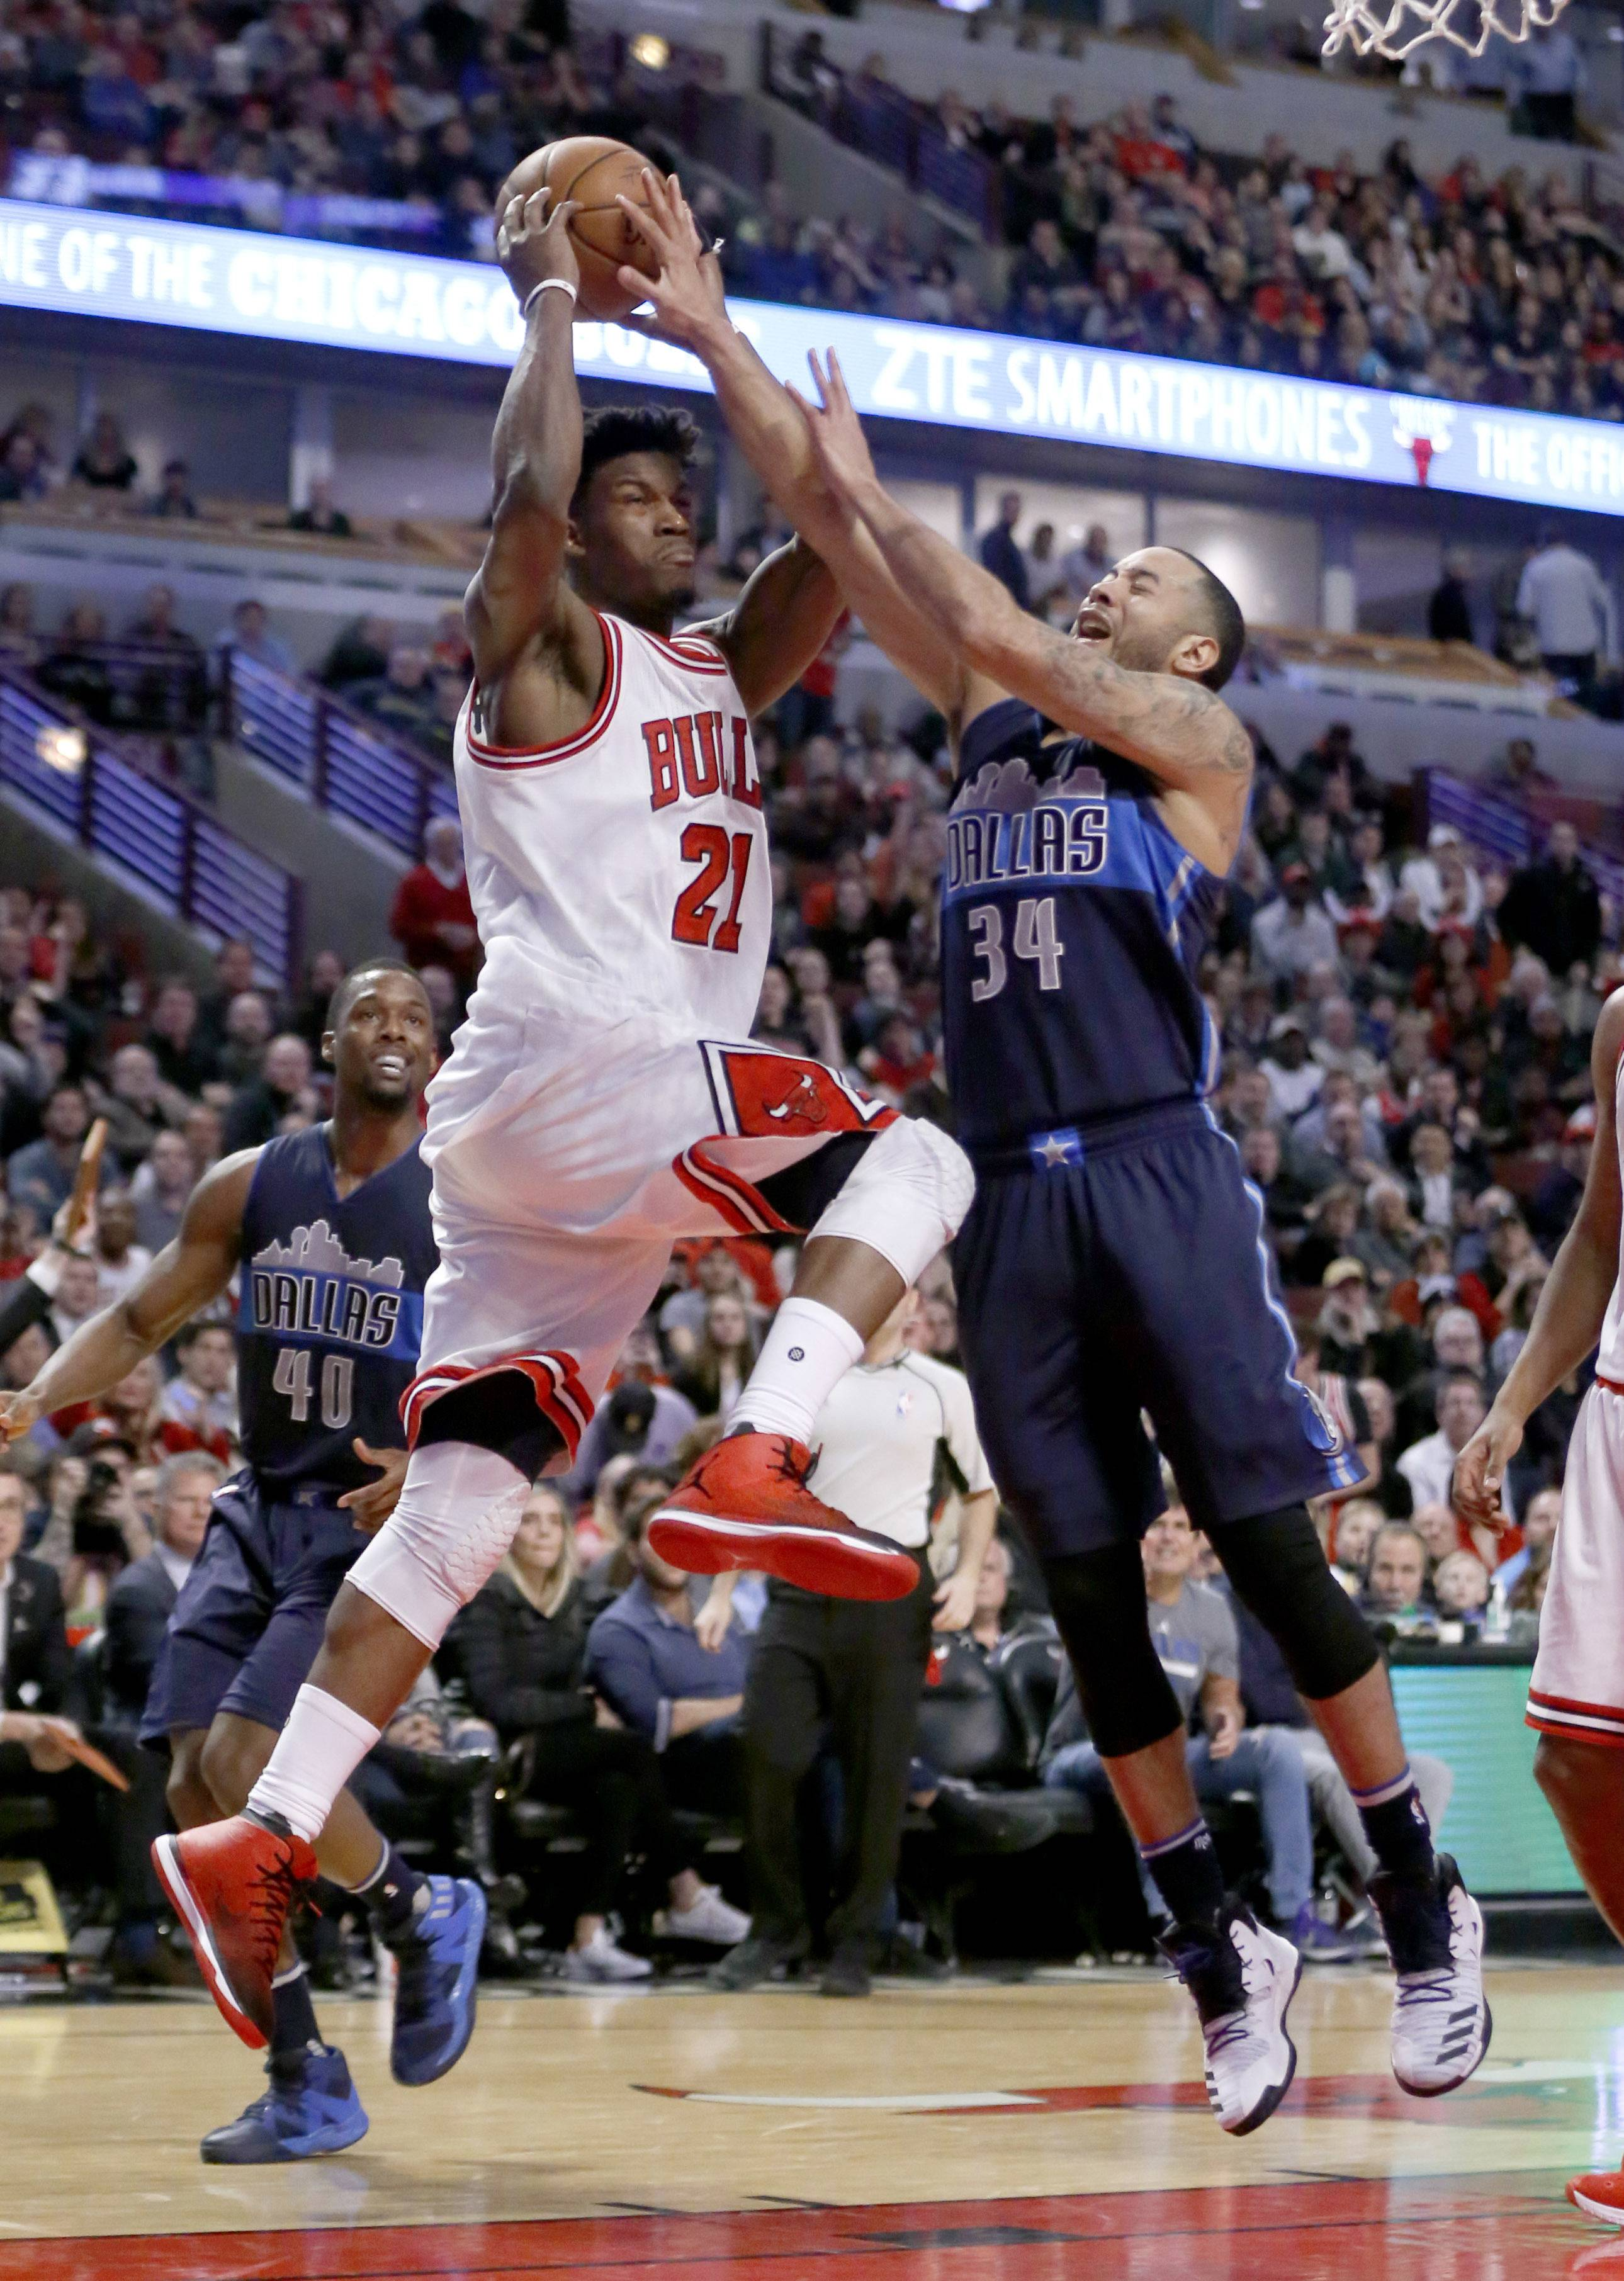 Chicago Bulls' Jimmy Butler (21) drives it the basket and is fouled by Dallas Mavericks' Devin Harris during the second half of an NBA basketball game Tuesday, Jan. 17, 2017, in Chicago. The Mavericks won 99-98. (AP Photo/Charles Rex Arbogast)